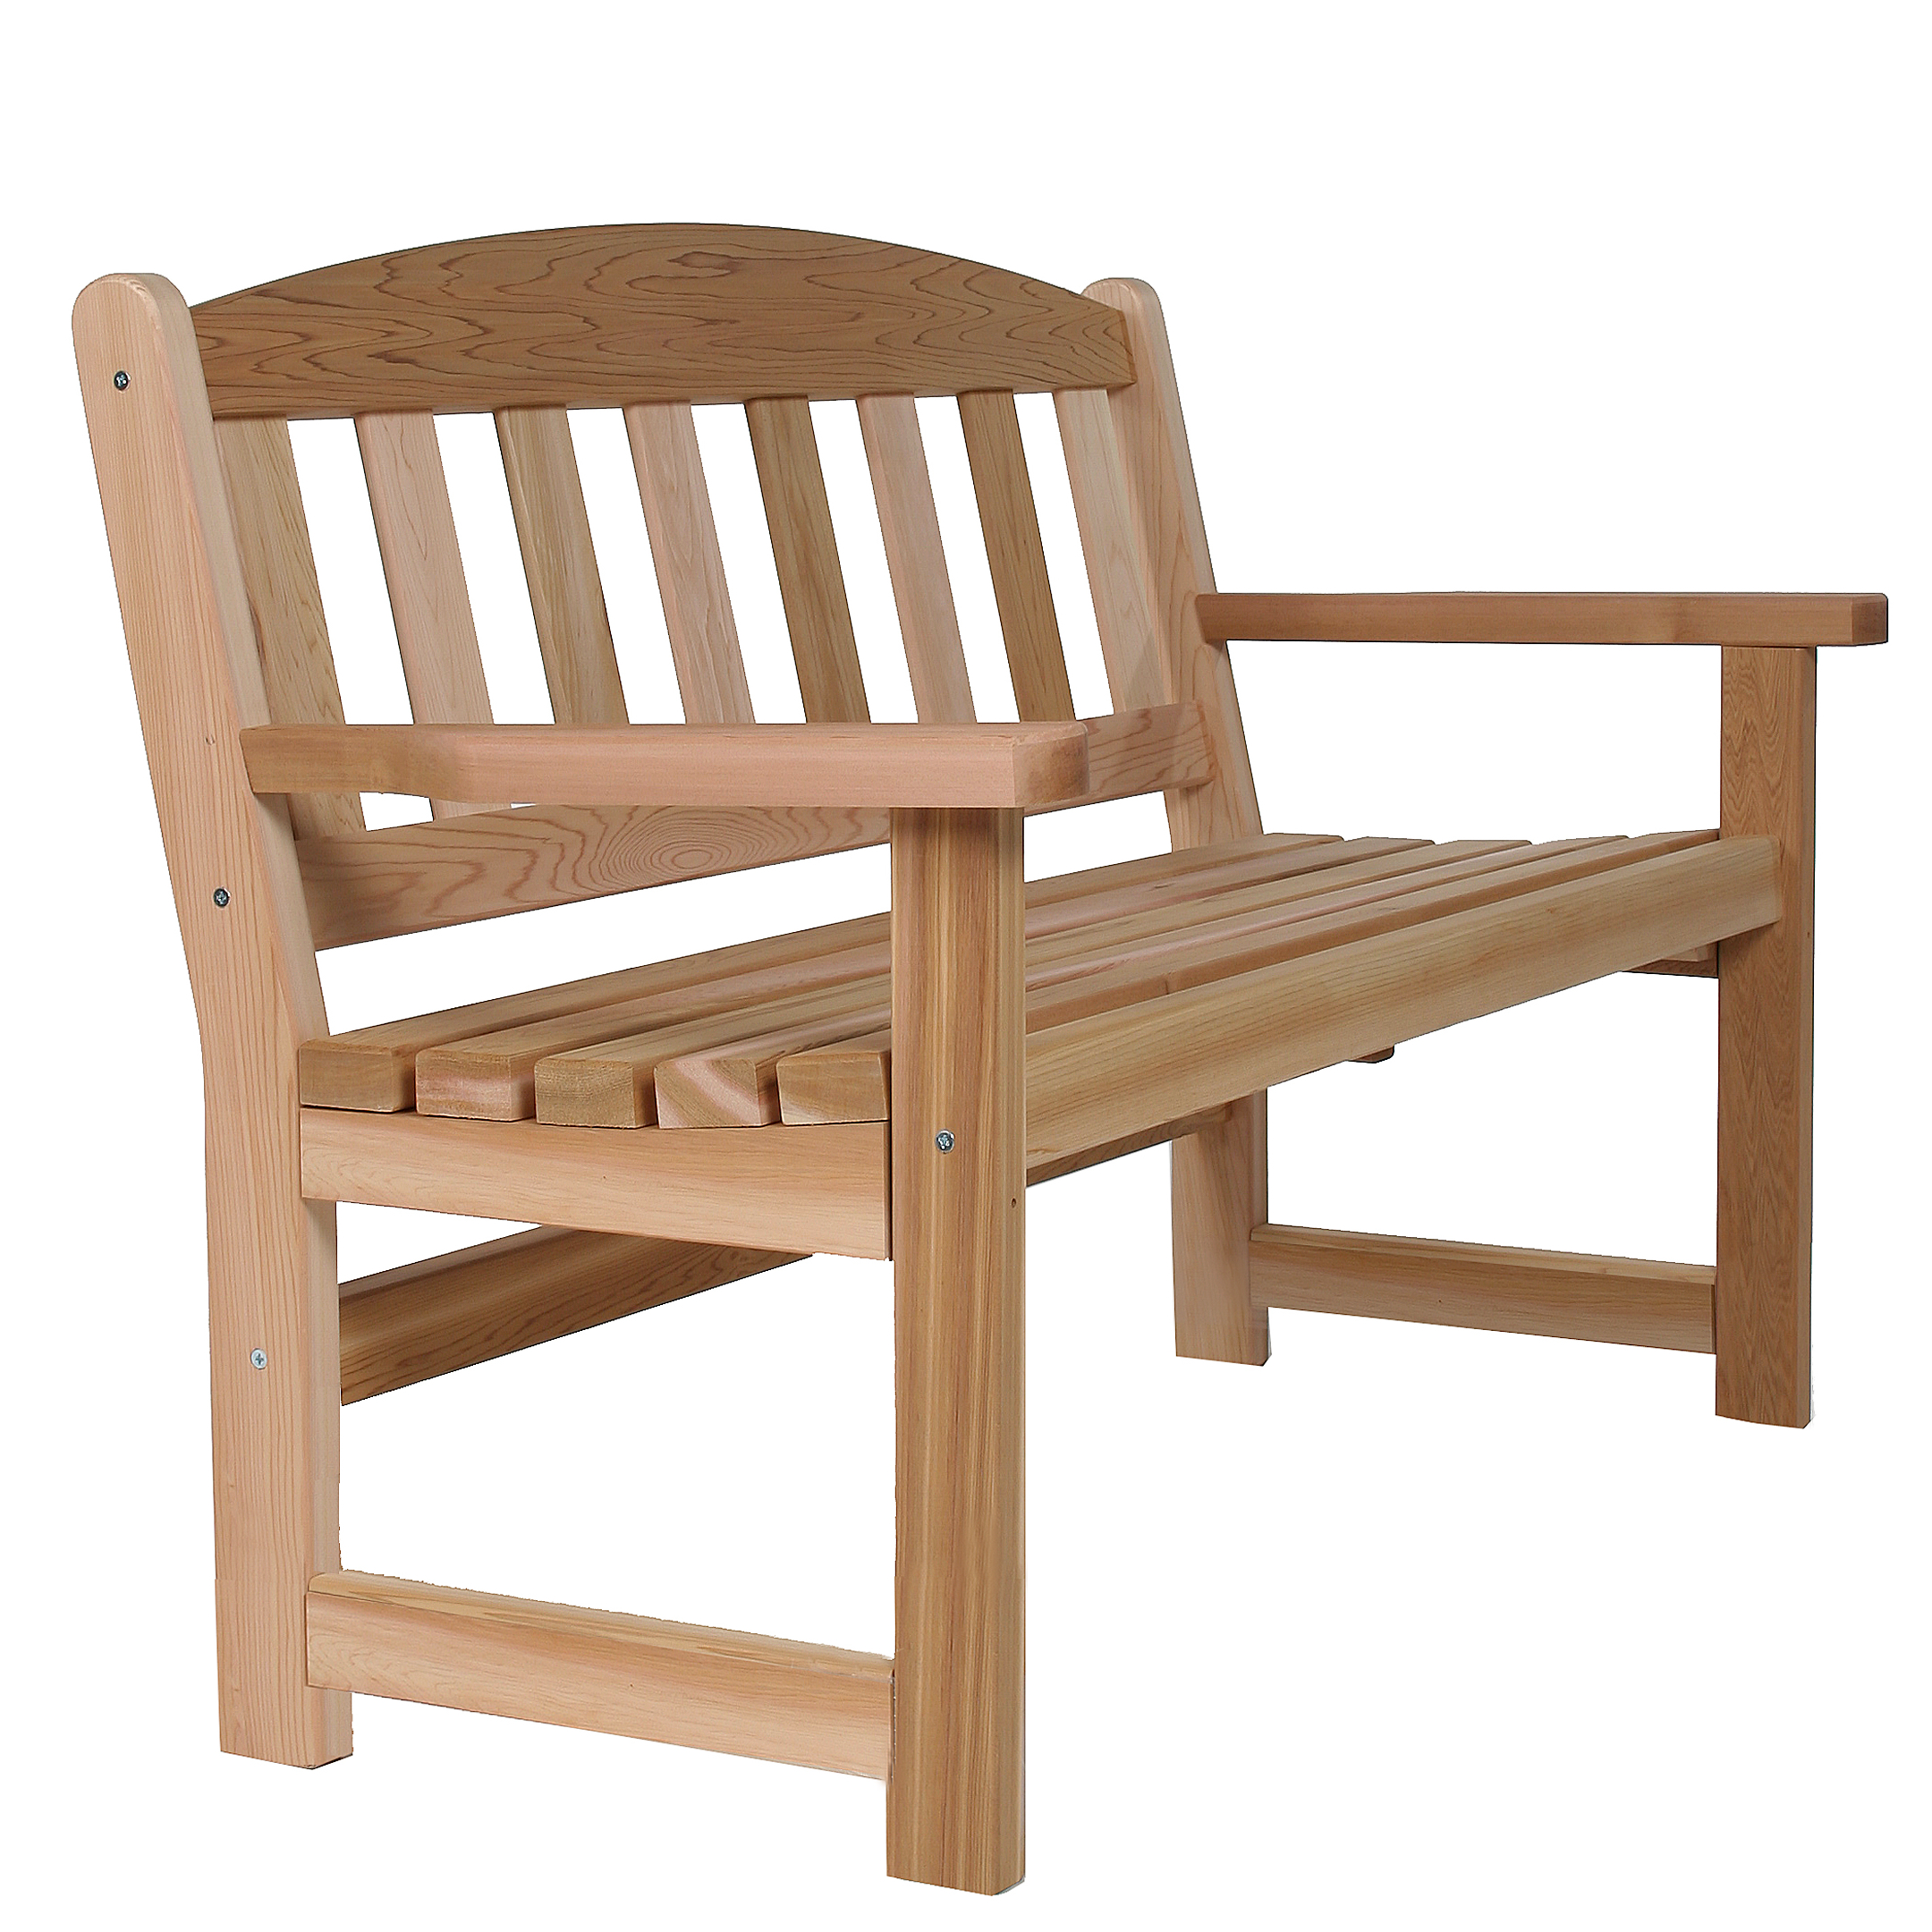 Garden Bench Park Bench And Wooden Benches By All Things Cedar